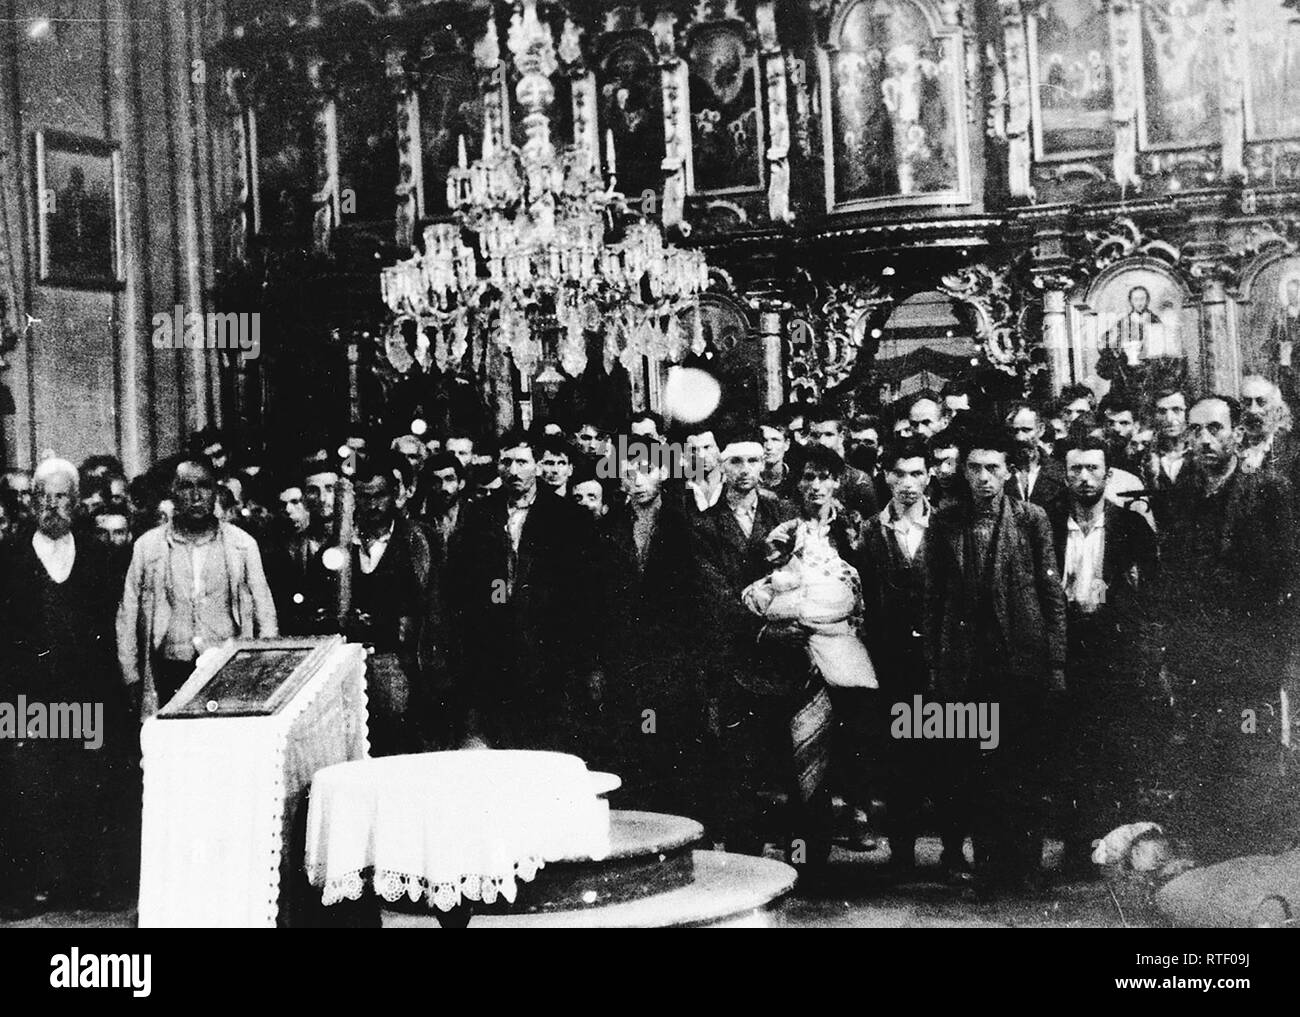 Serbian civilians who are being forced to convert to Catholicism by the Ustasa regime stand in front of a baptismal font in a church in Glina. 30 July 1941 Stock Photo